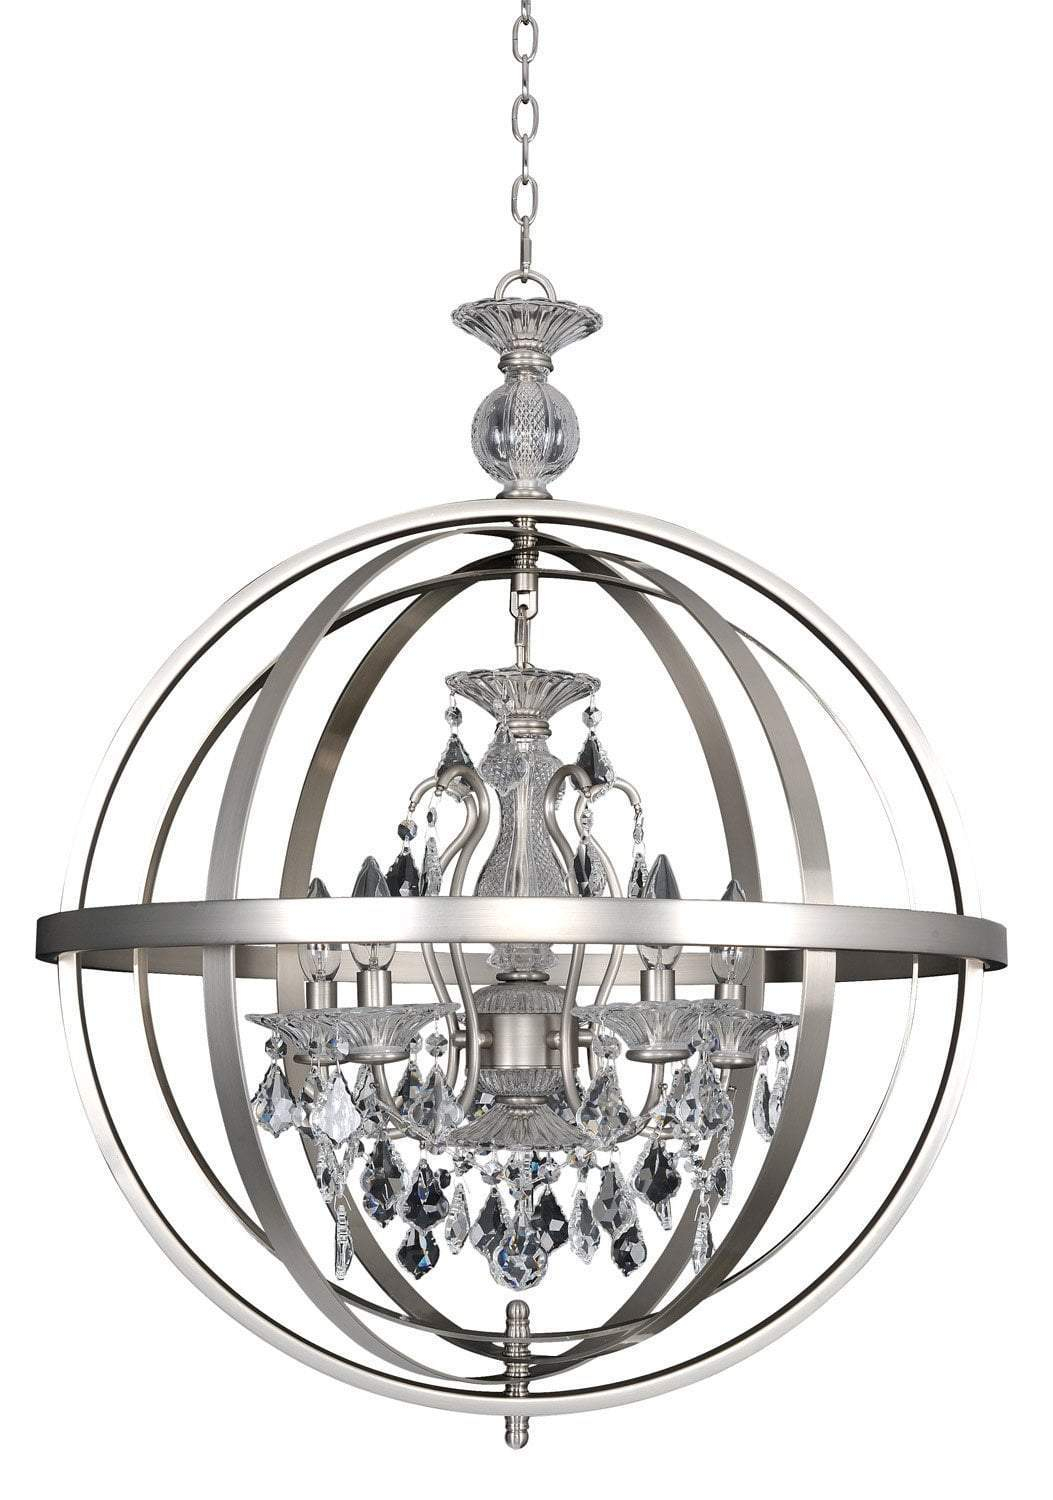 Catel 5 Light Chandelier In 2019 | Products | 5 Light Throughout Waldron 5 Light Globe Chandeliers (Gallery 29 of 30)